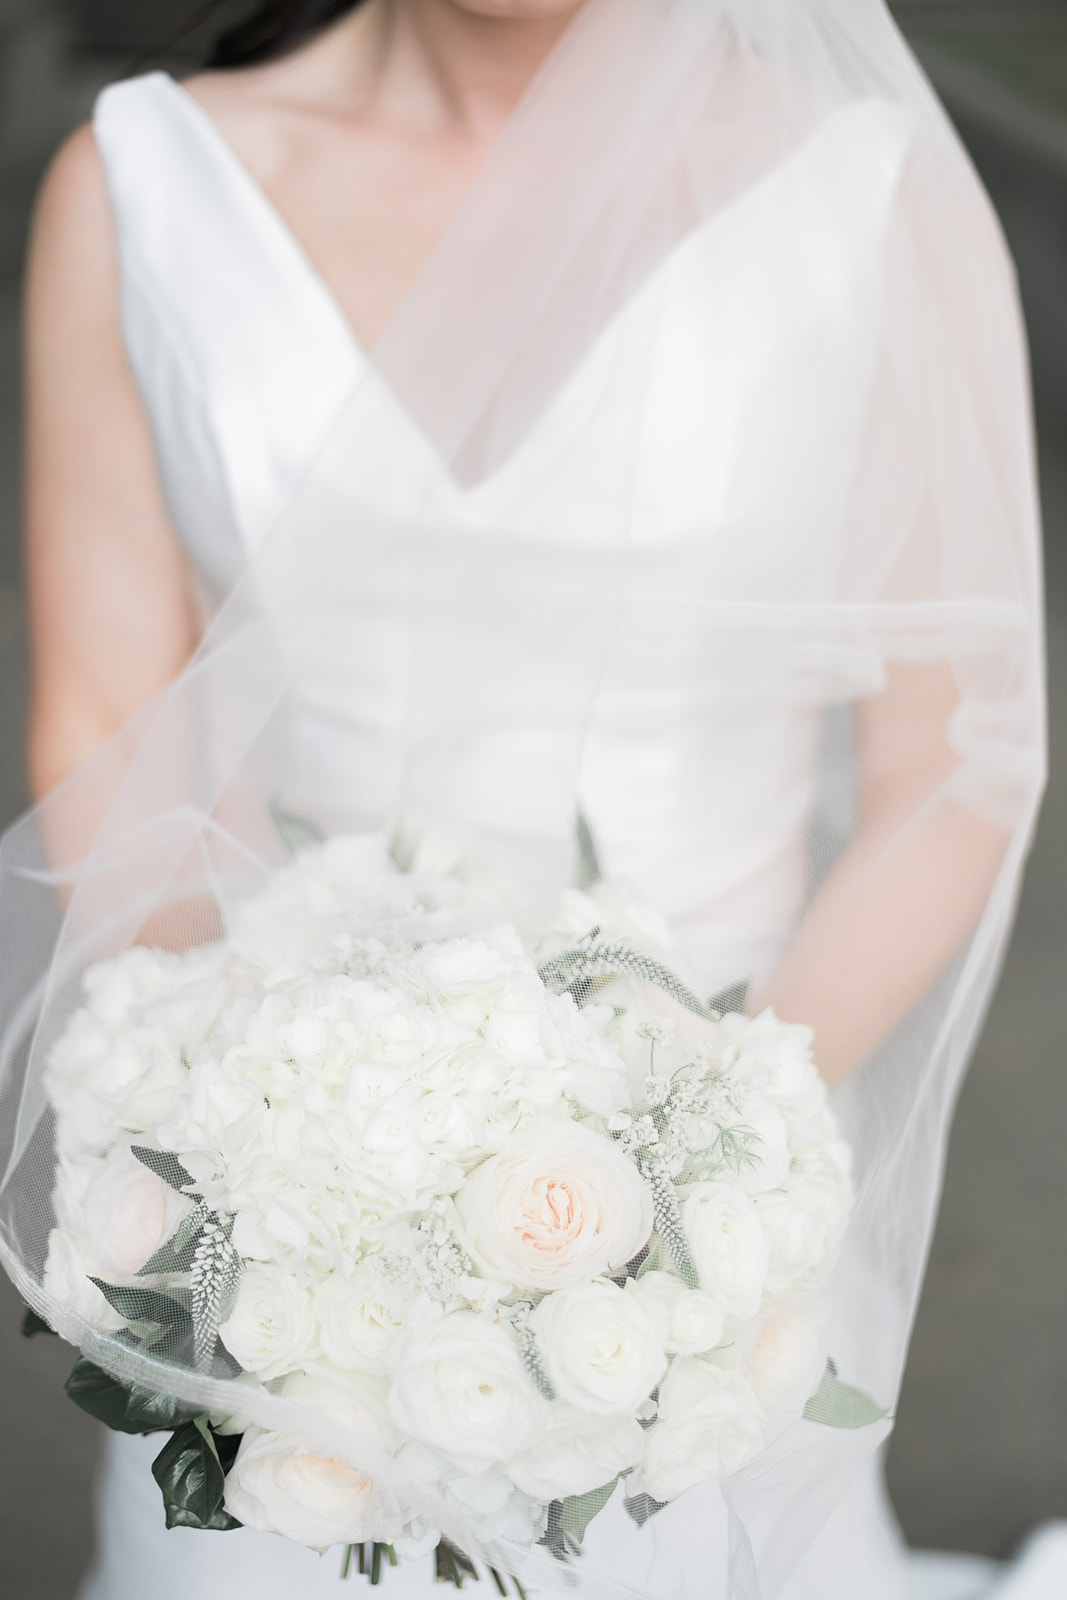 Bride holding white wedding bouquet for Pittsburgh wedding at PNC Park planned by Exhale Events. Find more wedding inspiration at exhale-events.com!